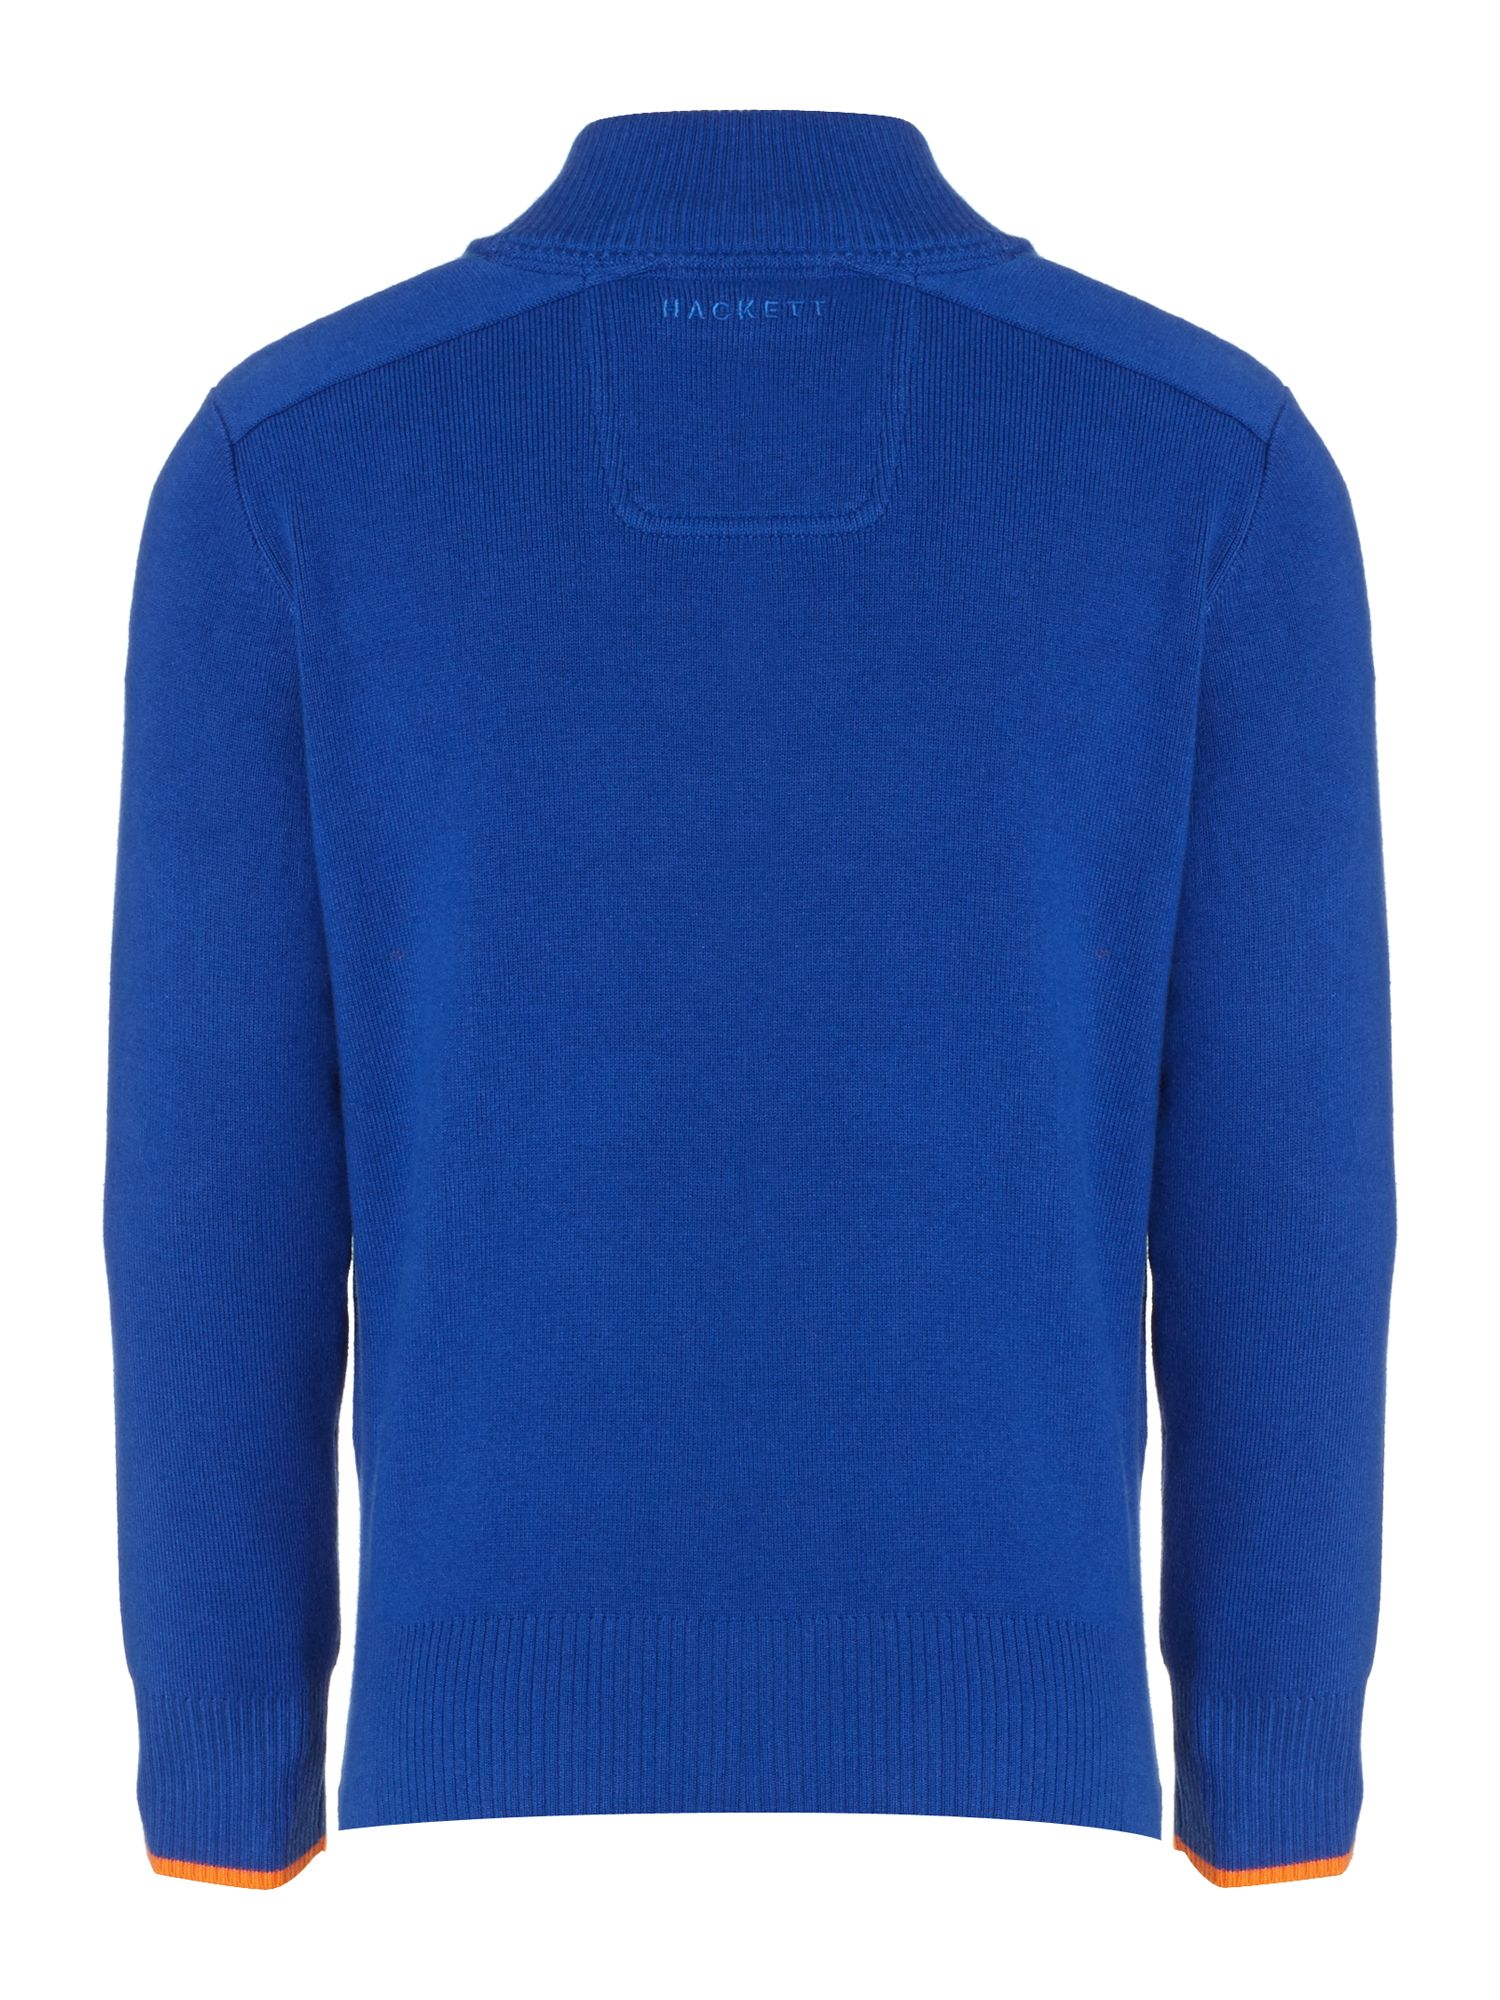 Boy`s Aston Martin funnel neck knit